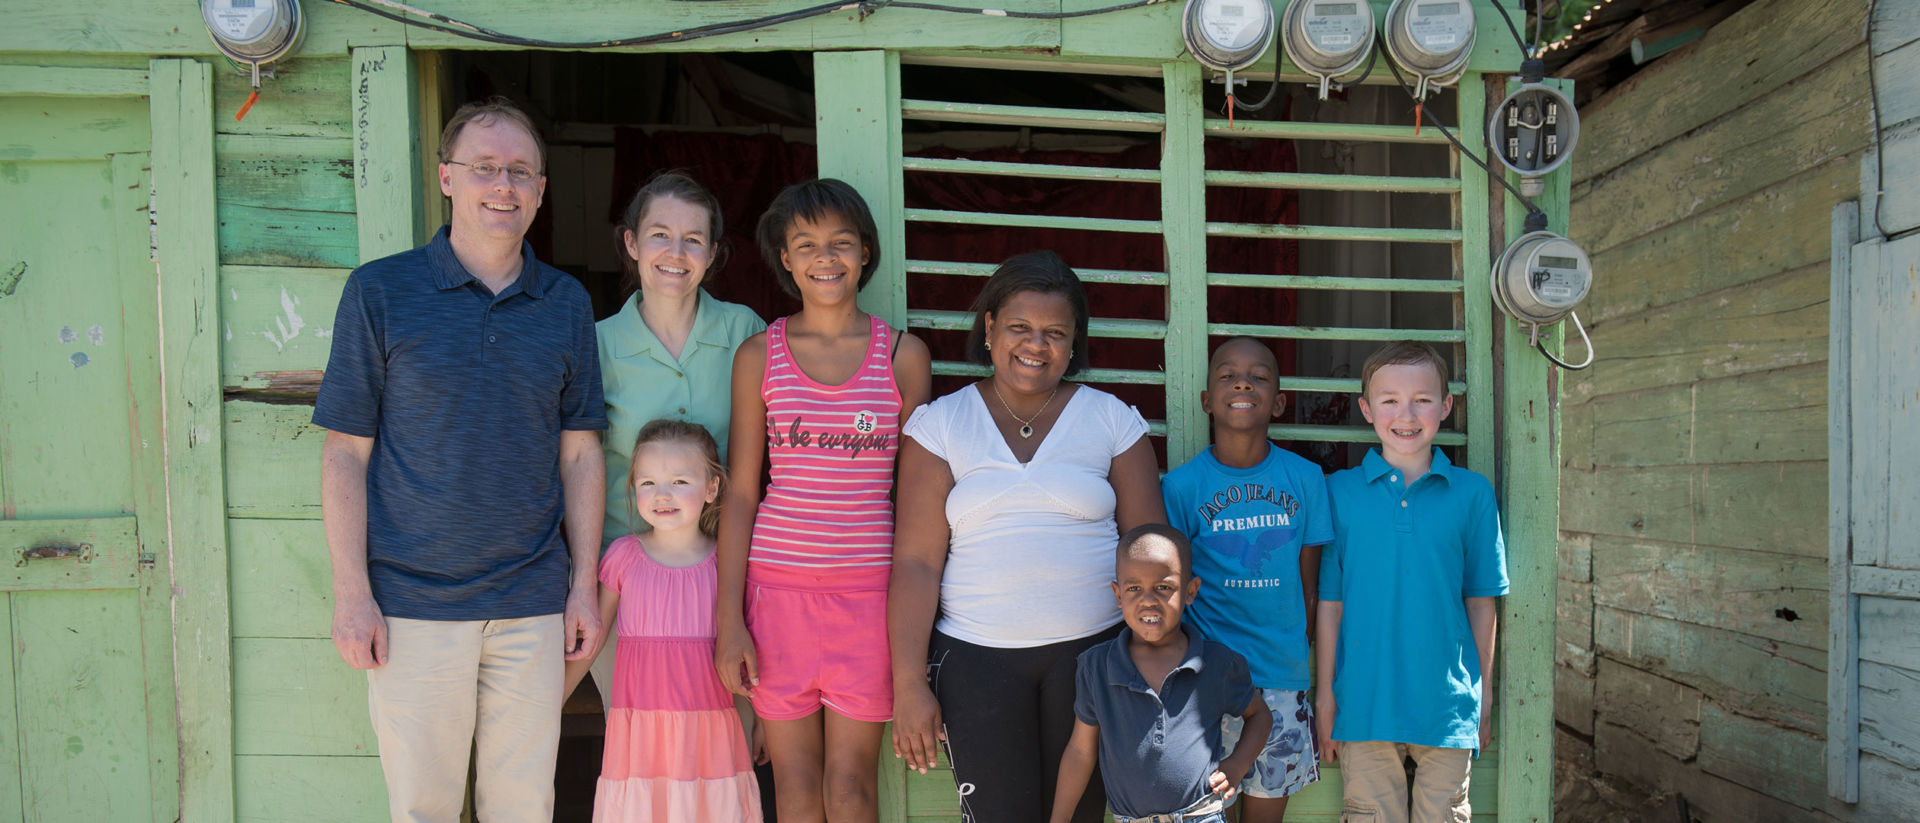 Alexander and Ian's family together outside home in Domincan Republic